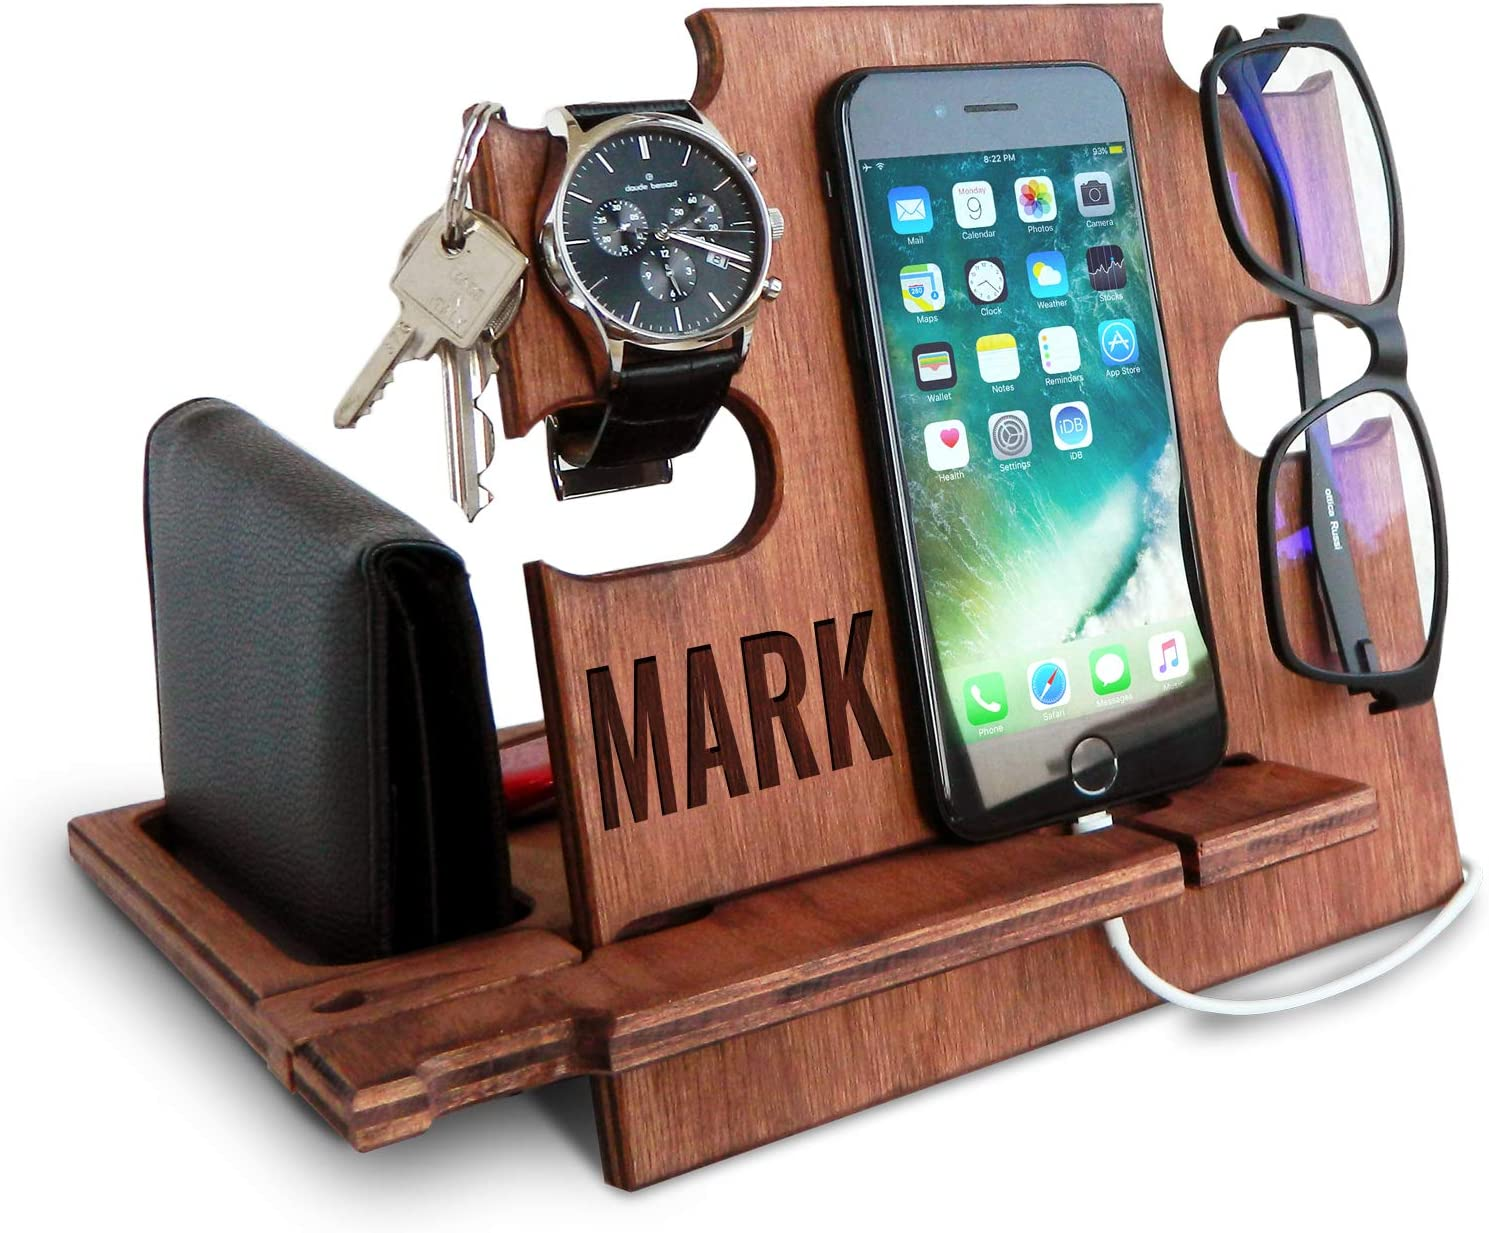 Personalized Gifts for Men, Cell Phone Stand, Wooden Desk Organizer, Phone Dock - Nightstand Charging Station, Phone Holder, Gift Ideas for Christmas, Birthday, Anniversary (Walnut)